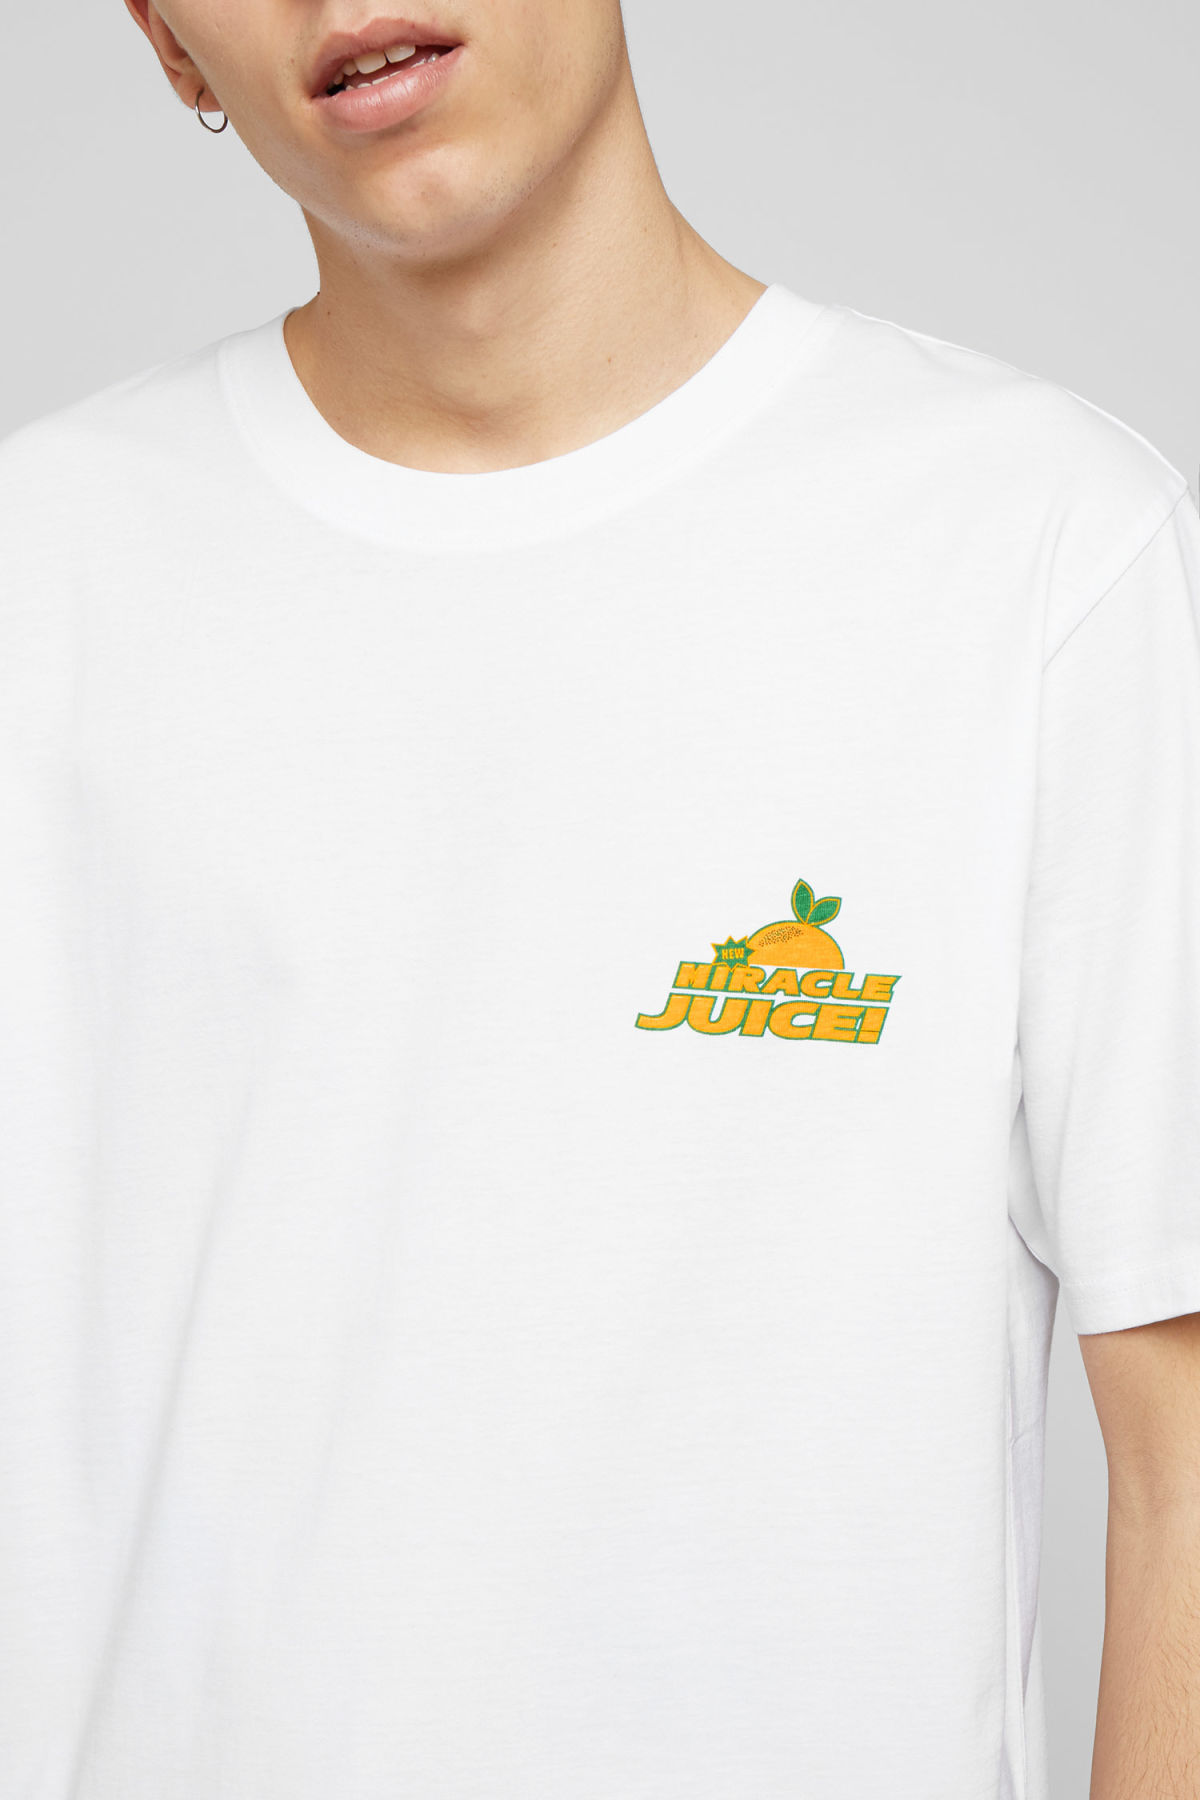 Model side image of Weekday frank miracle juice t-shirt in white